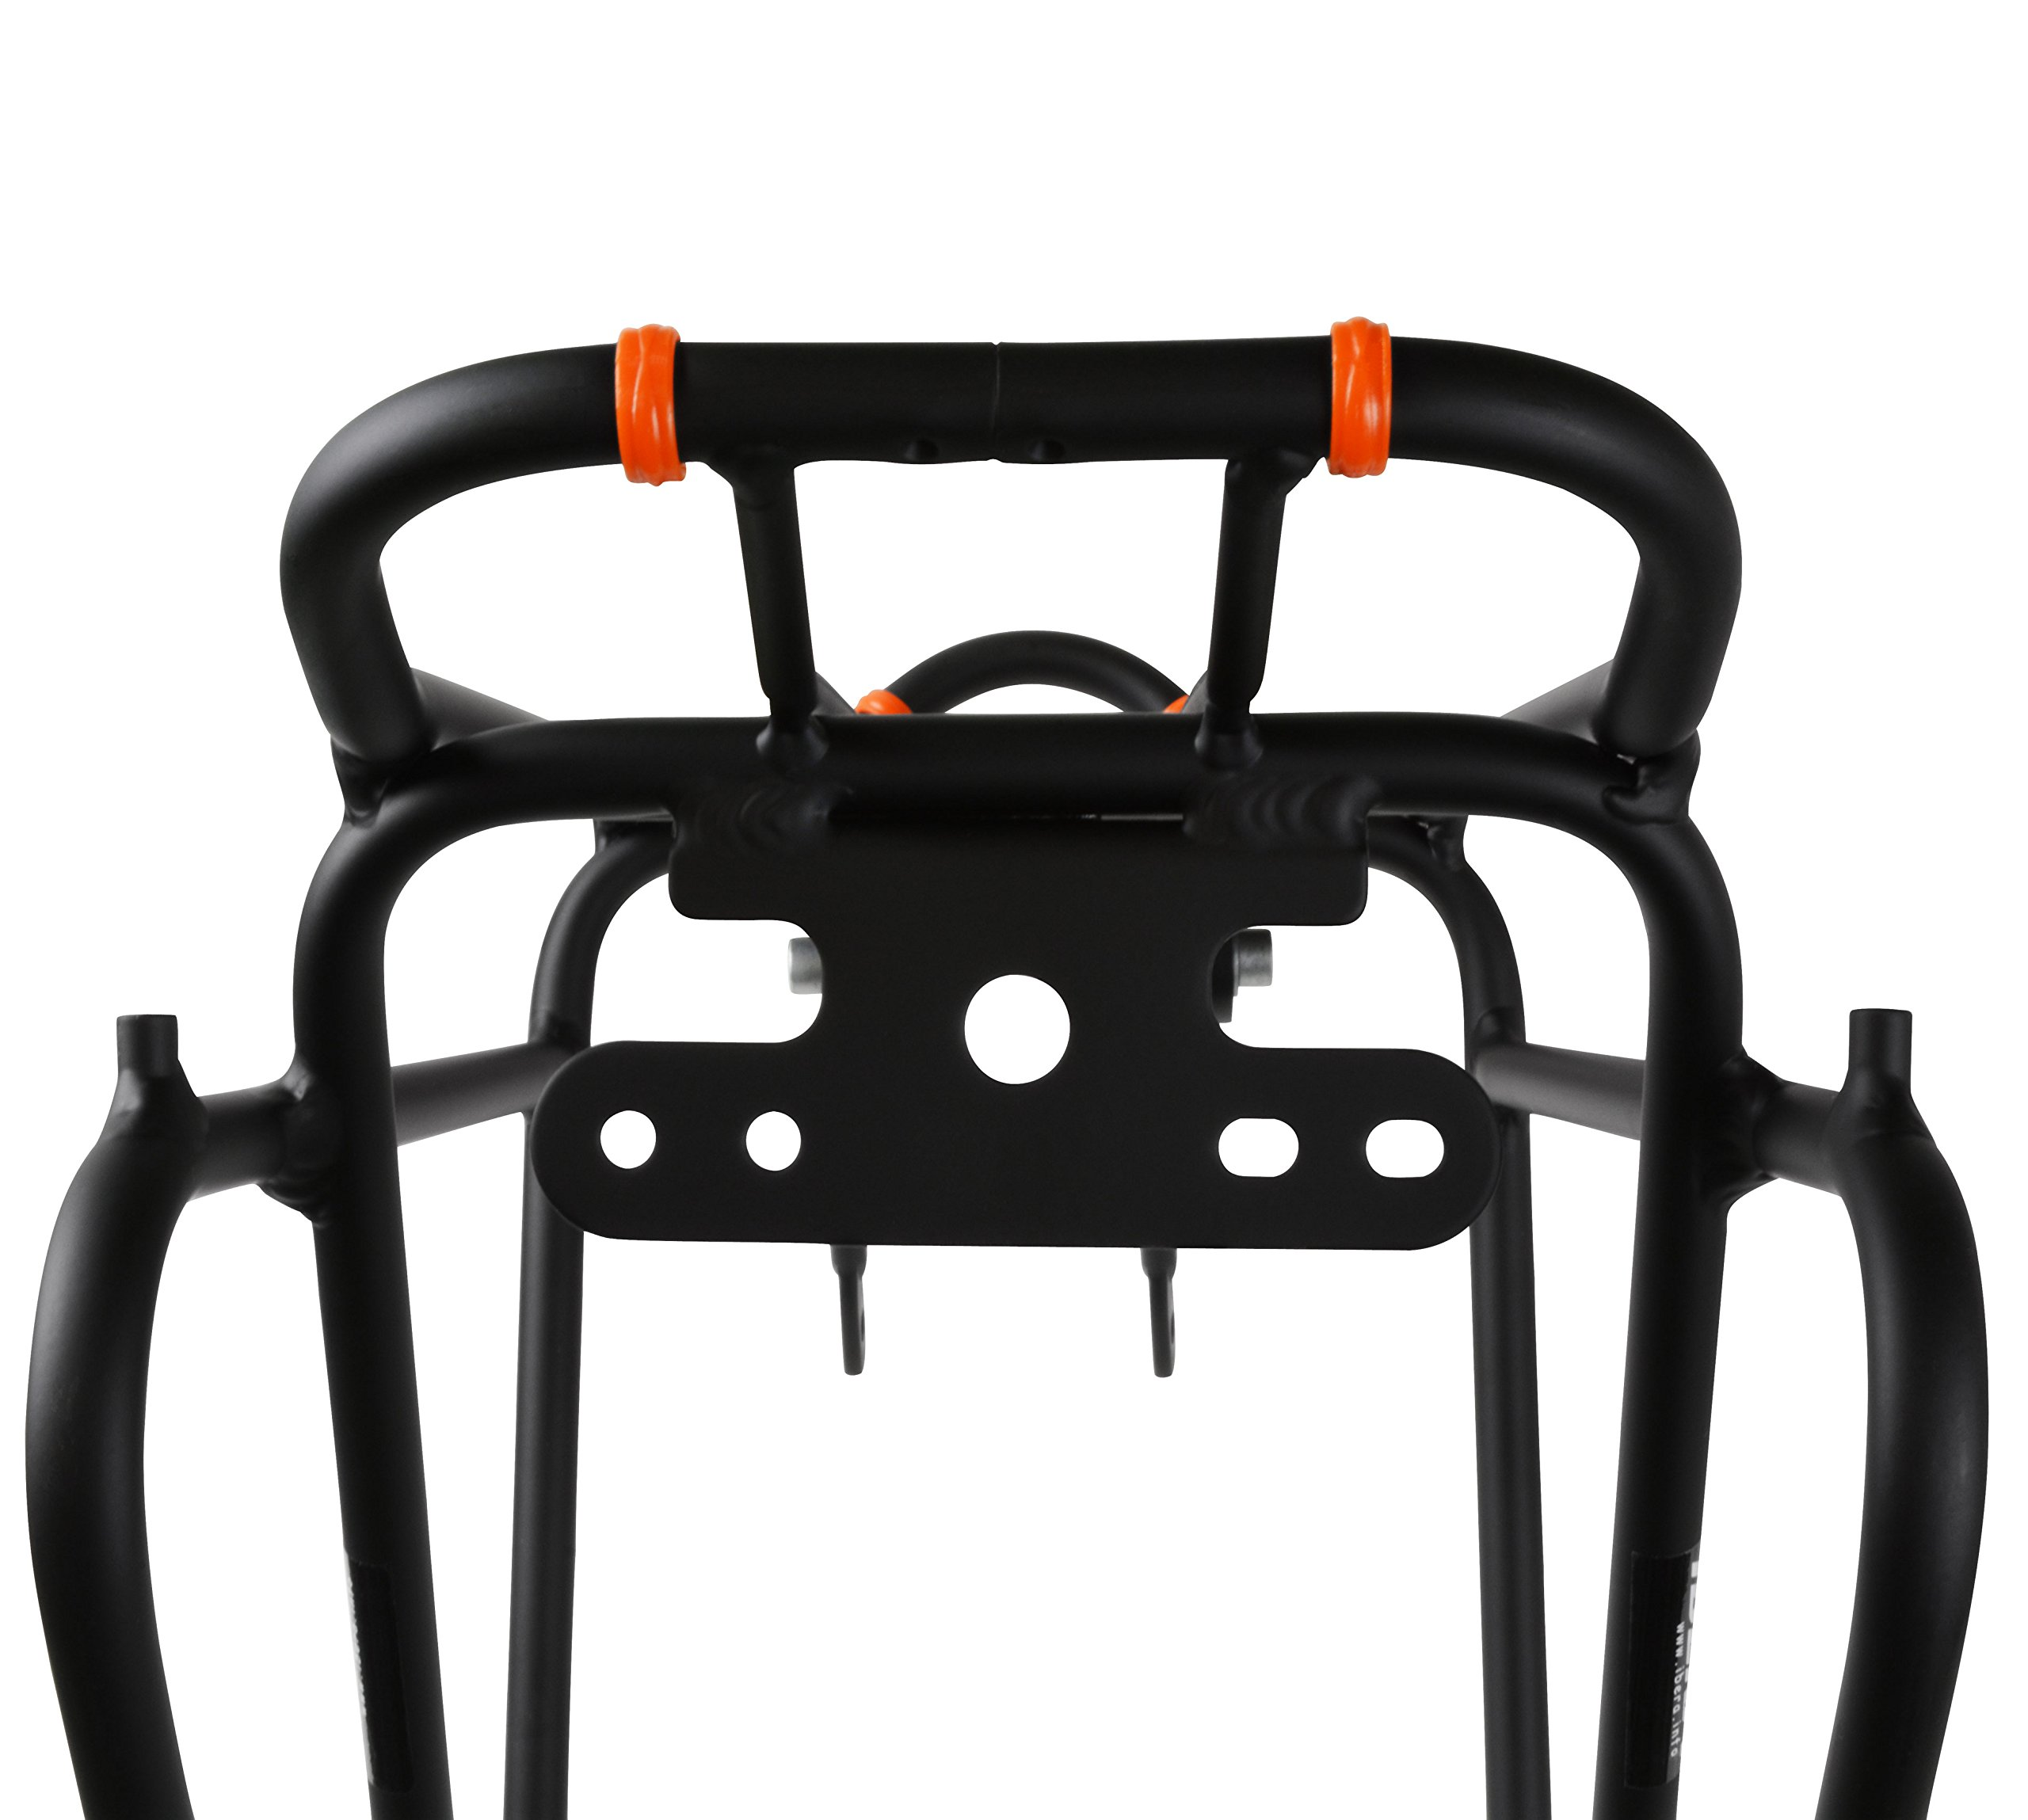 Ibera Bike Rack - Bicycle Touring Carrier Plus+ for Non-Disc Brake Mount, Frame-Mounted for Heavier Top & Side Loads, Height Adjustable for 26''-29'' Frames by Ibera (Image #5)